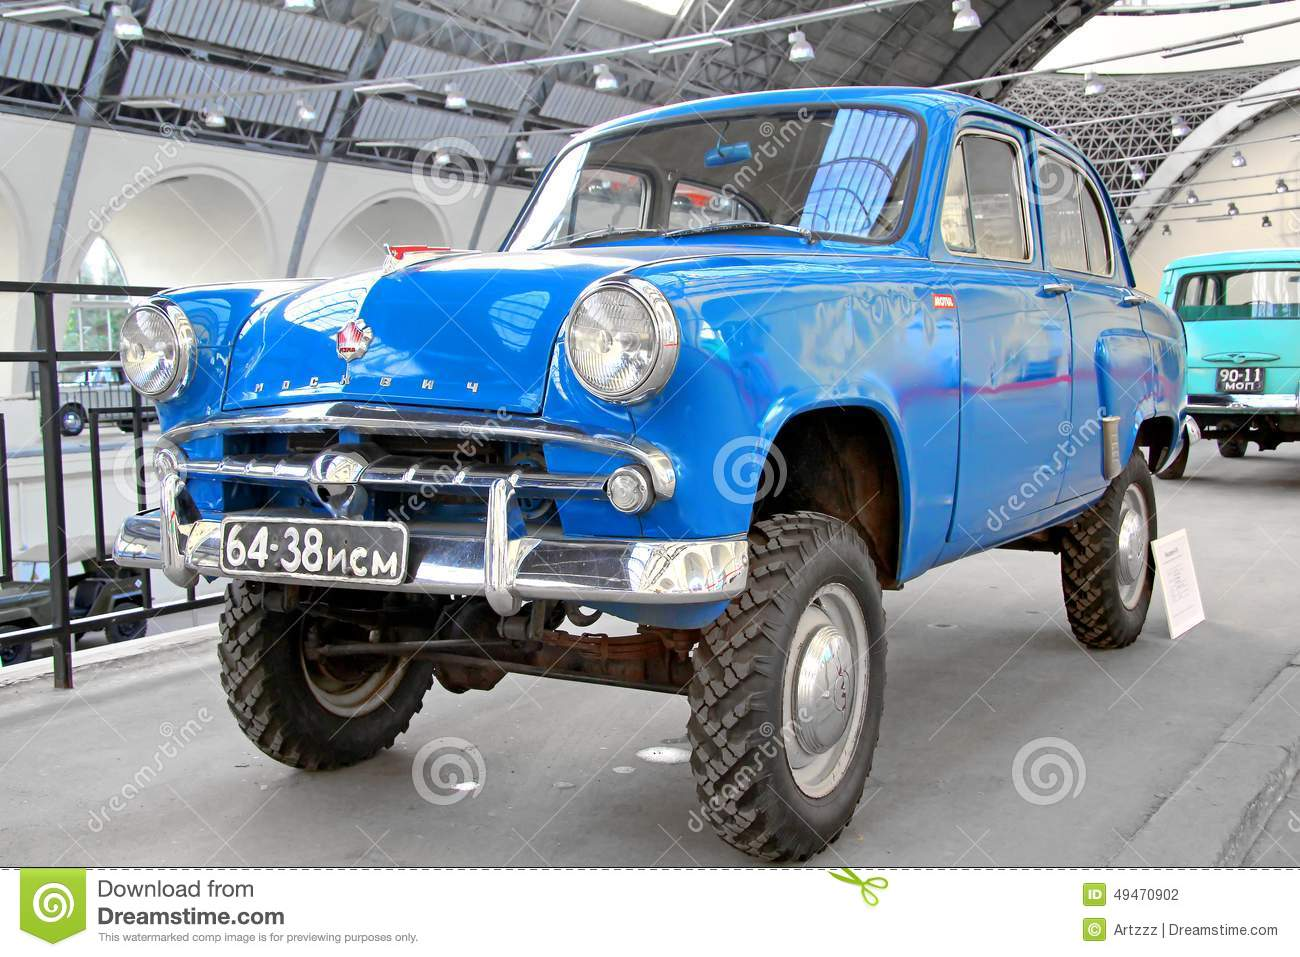 Car Moskvich-410: technical specifications, tuning 37